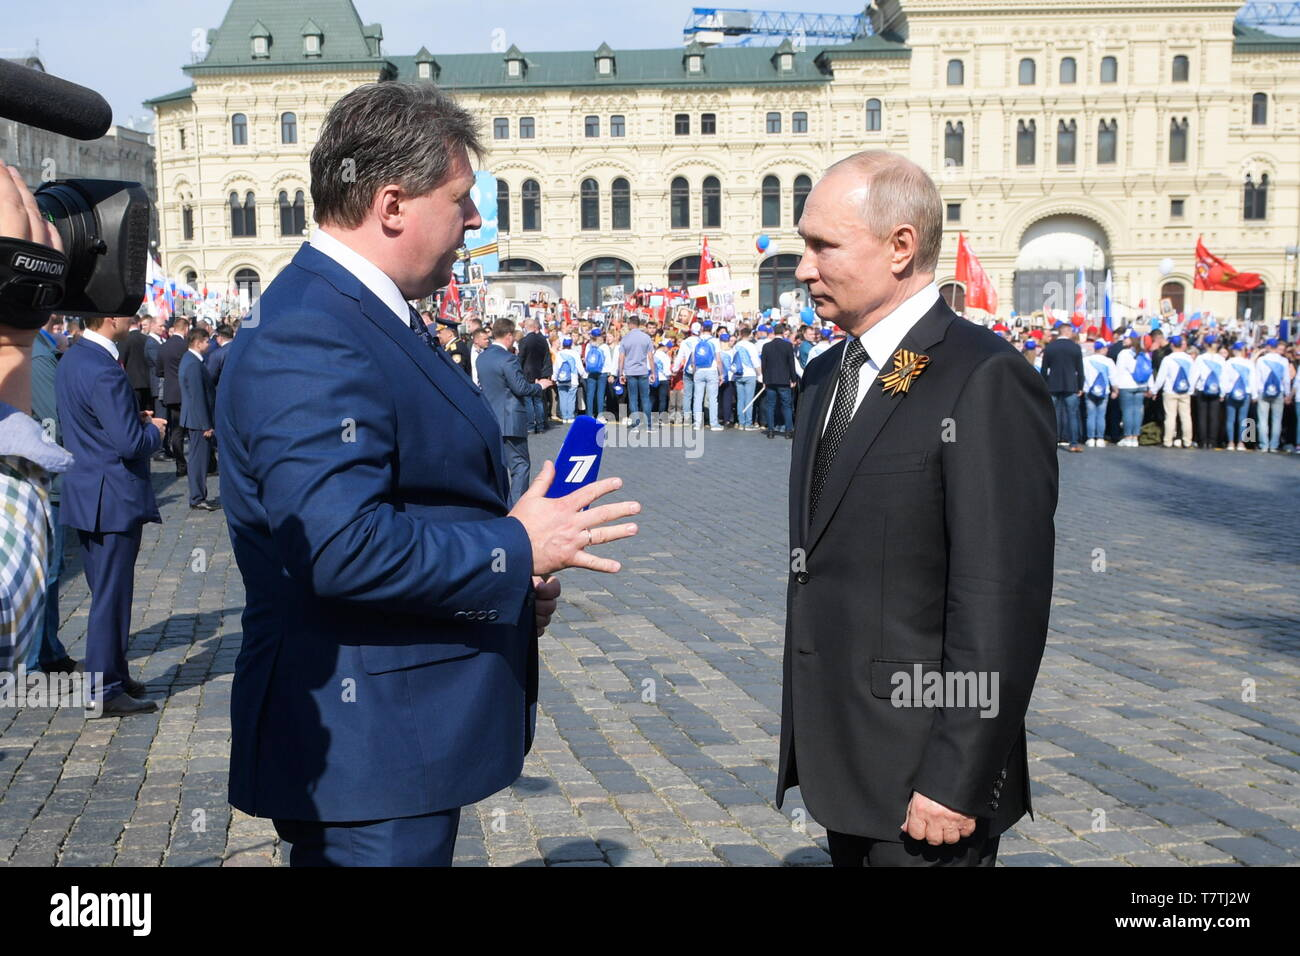 Moscow, Russia. 09th May, 2019. MOSCOW, RUSSIA - MAY 9, 2019: Russia's President Vladimir Putin (R) interviewed by a Channel One journalist in Red Square after the Immortal Regiment march marking the 74th anniversary of the Victory over Nazi Germany in the Great Patriotic War, the Eastern Front of World War II. Alexei Druzhinin/Russian Presidential Press and Information Office/TASS Credit: ITAR-TASS News Agency/Alamy Live News - Stock Image